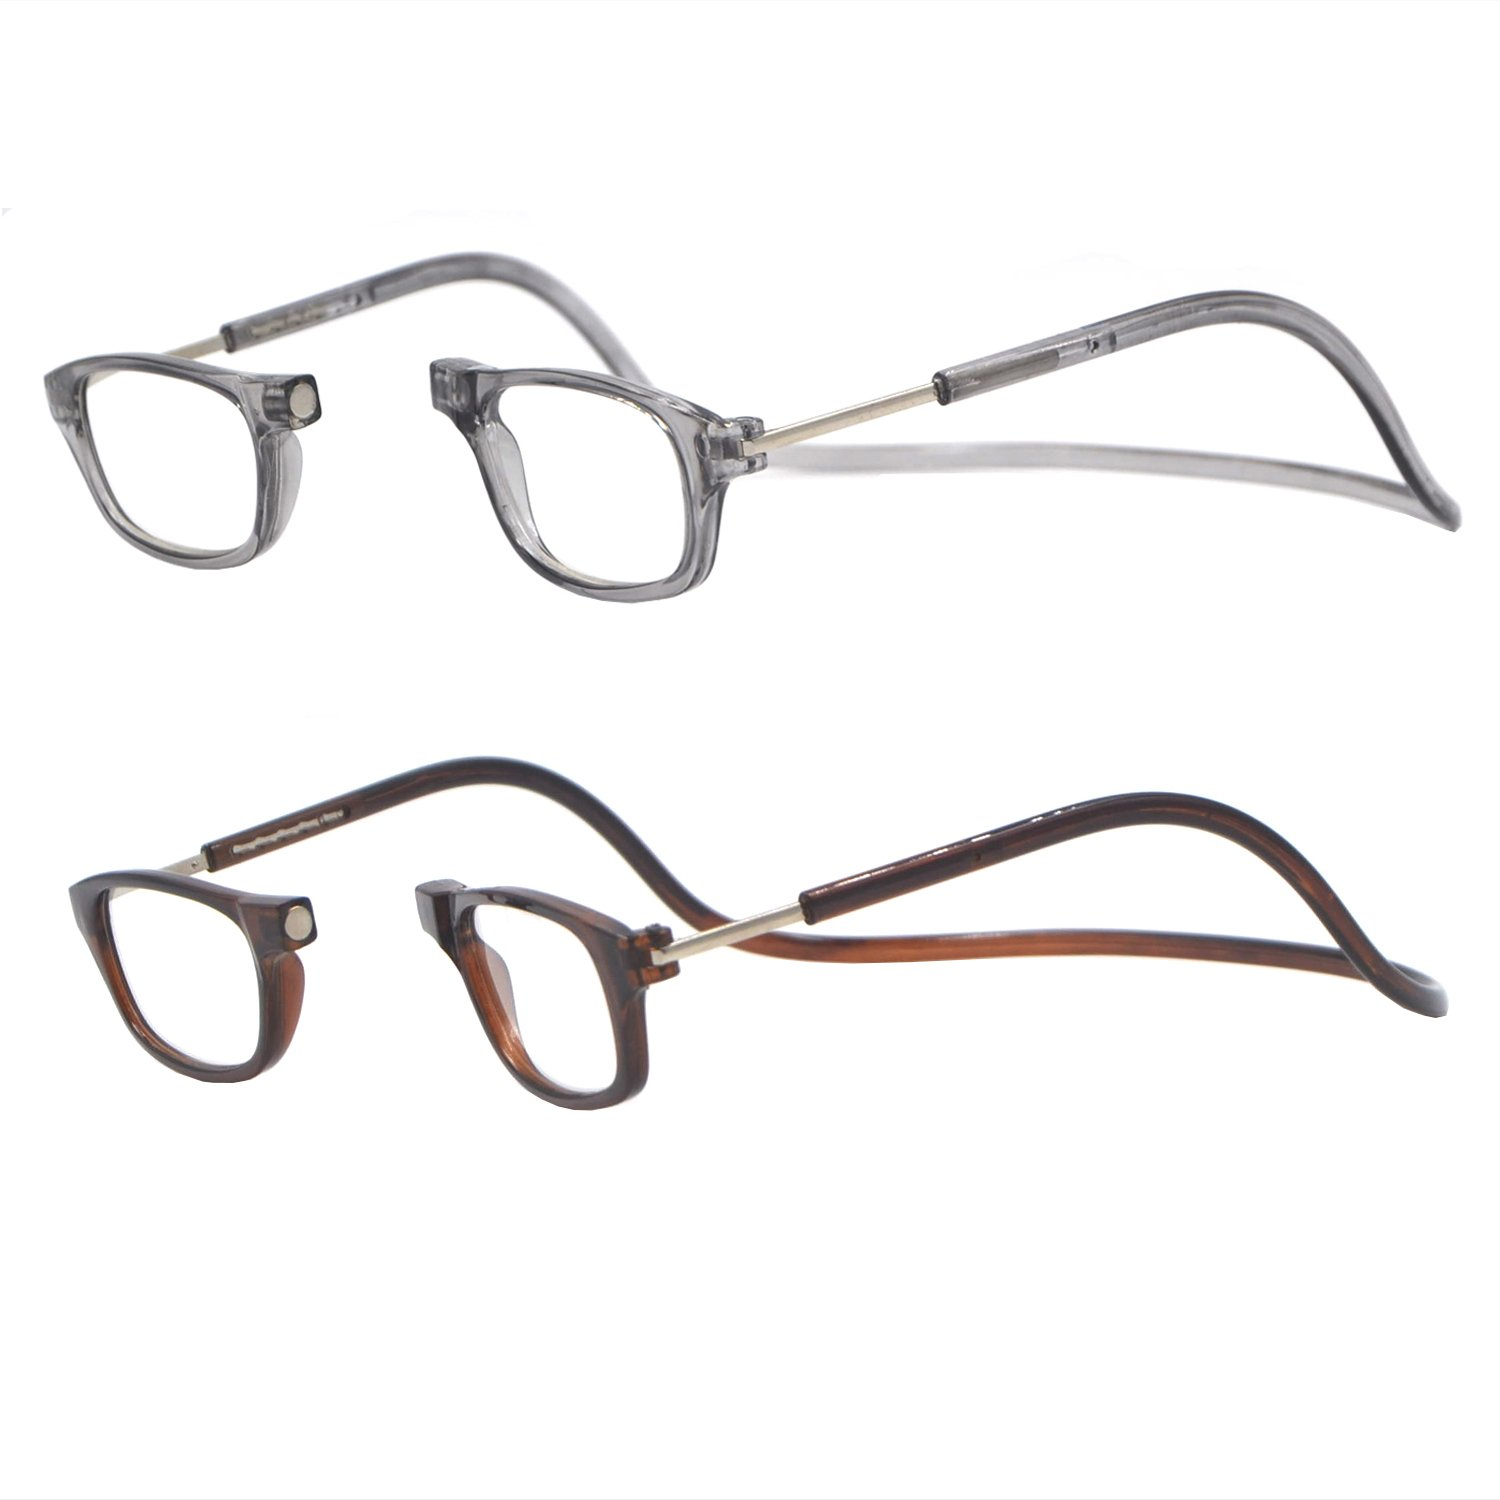 2 Pack Gray and Brown Frames Front Connection Reader Glasses (2.25X)